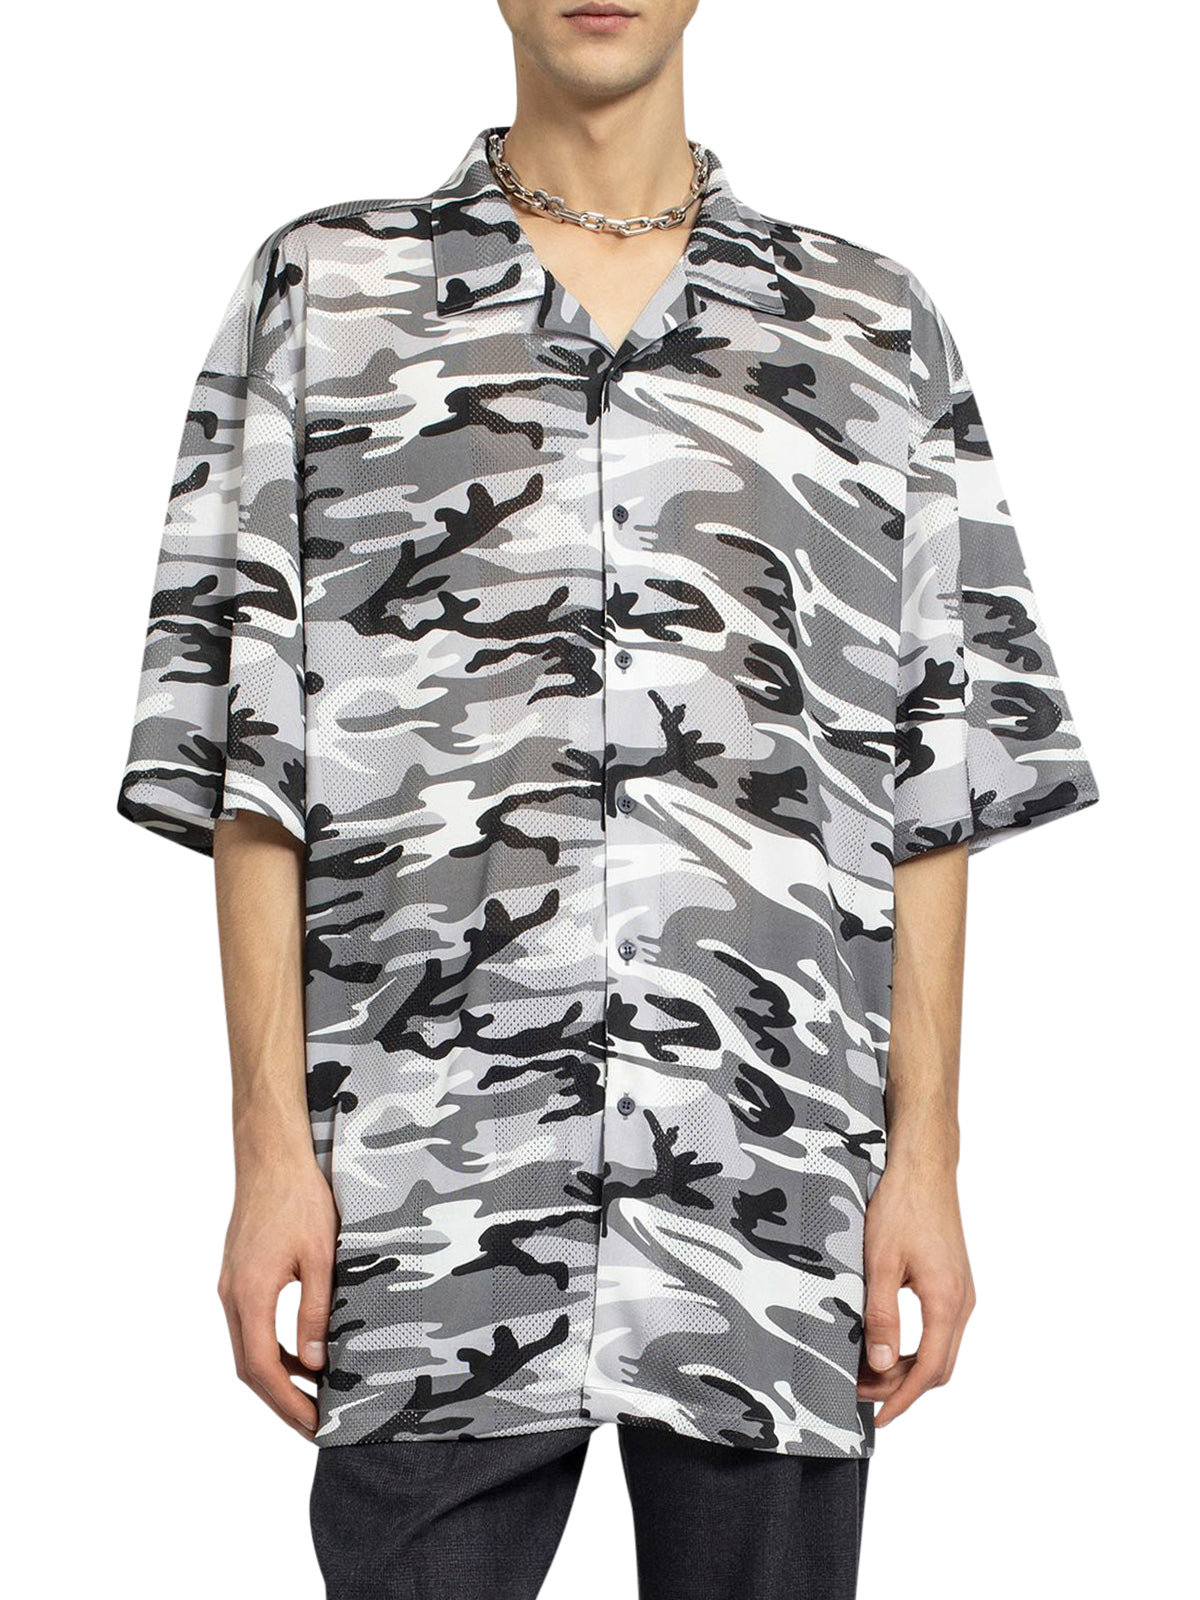 Grey camouflage xl short sleeve shirt